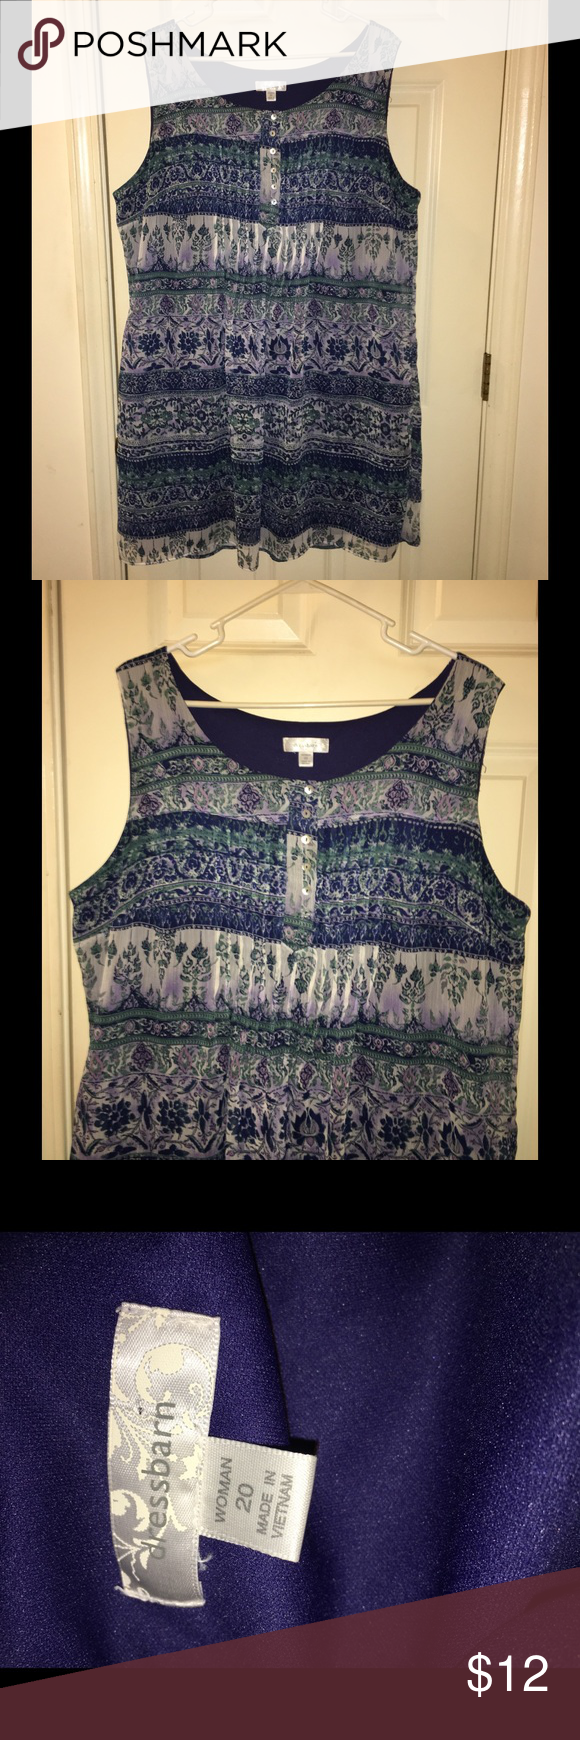 Dressbarn Size 20 Sundress Blue printed dress. Sleeveless sundress.  Shirt style.  Dress is 39 inches long.  Can also be worn with legging capris.   Size 20.  From Dressbarn. Good condition.  Important:   All items are freshly laundered as applicable prior to shipping (new items and shoes excluded).  Not all my items are from pet/smoke free homes.  Price is reduced to reflect this!   Thank you for looking! Dress Barn Dresses Mini